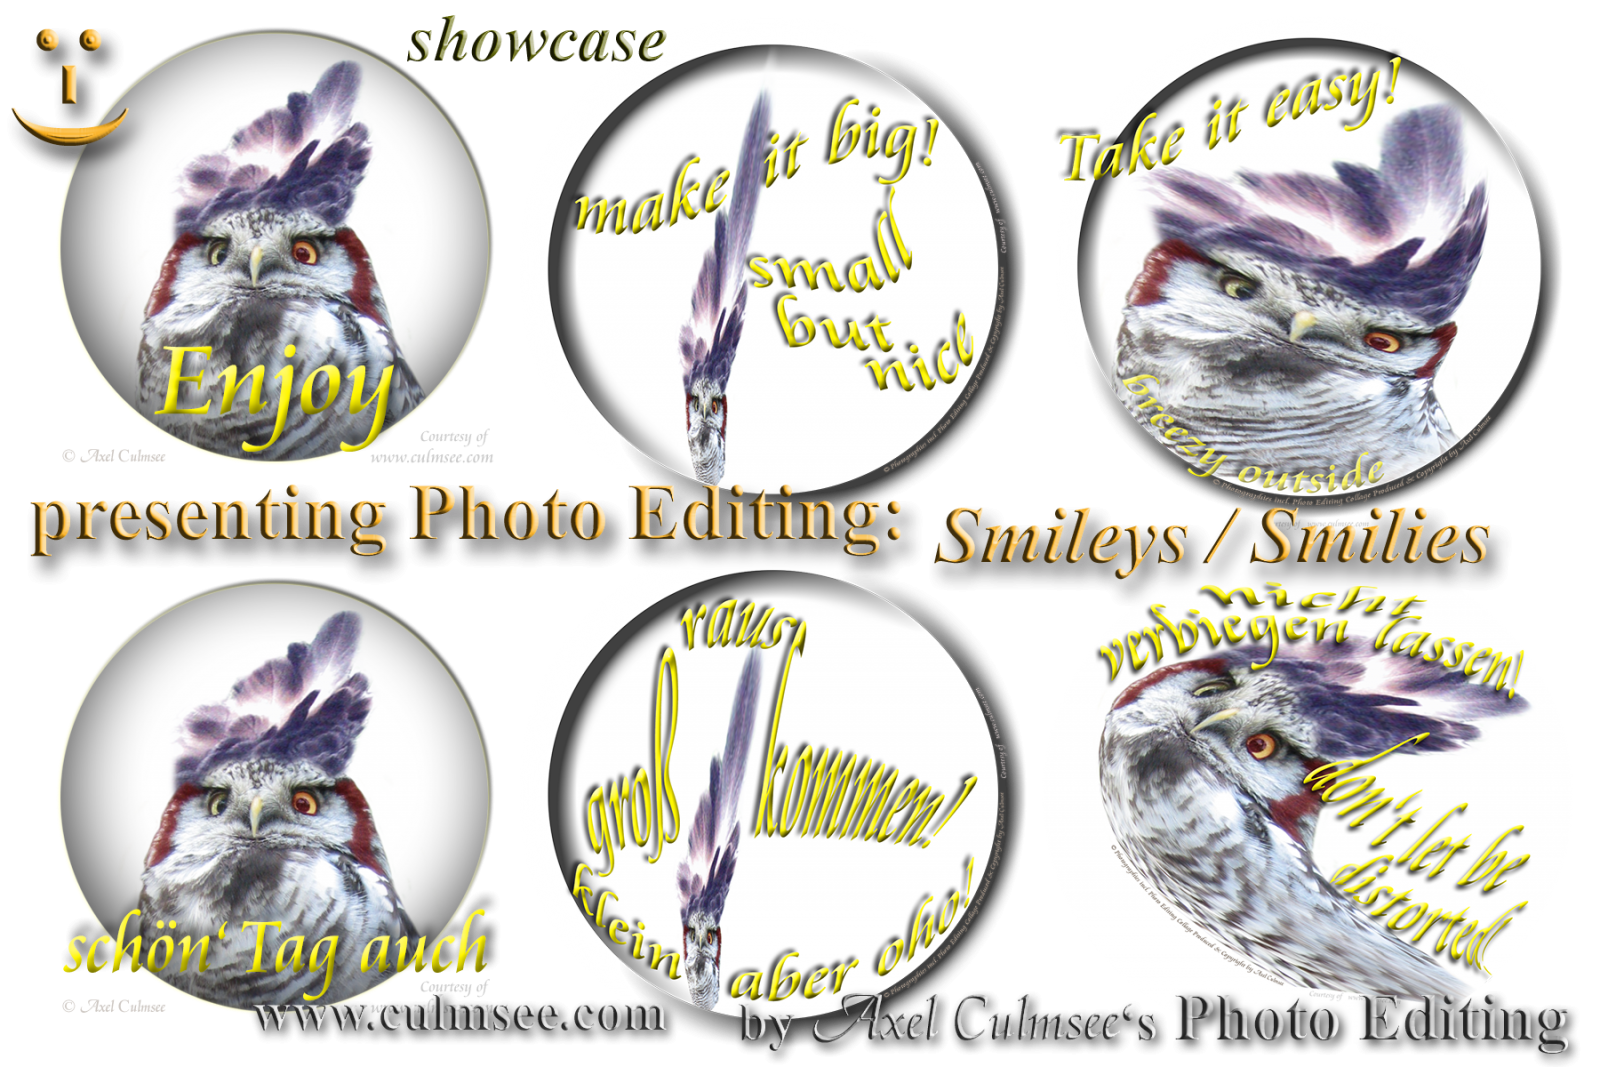 Smiley buttons compilation Photo Editing extreme with Hawk-Owls